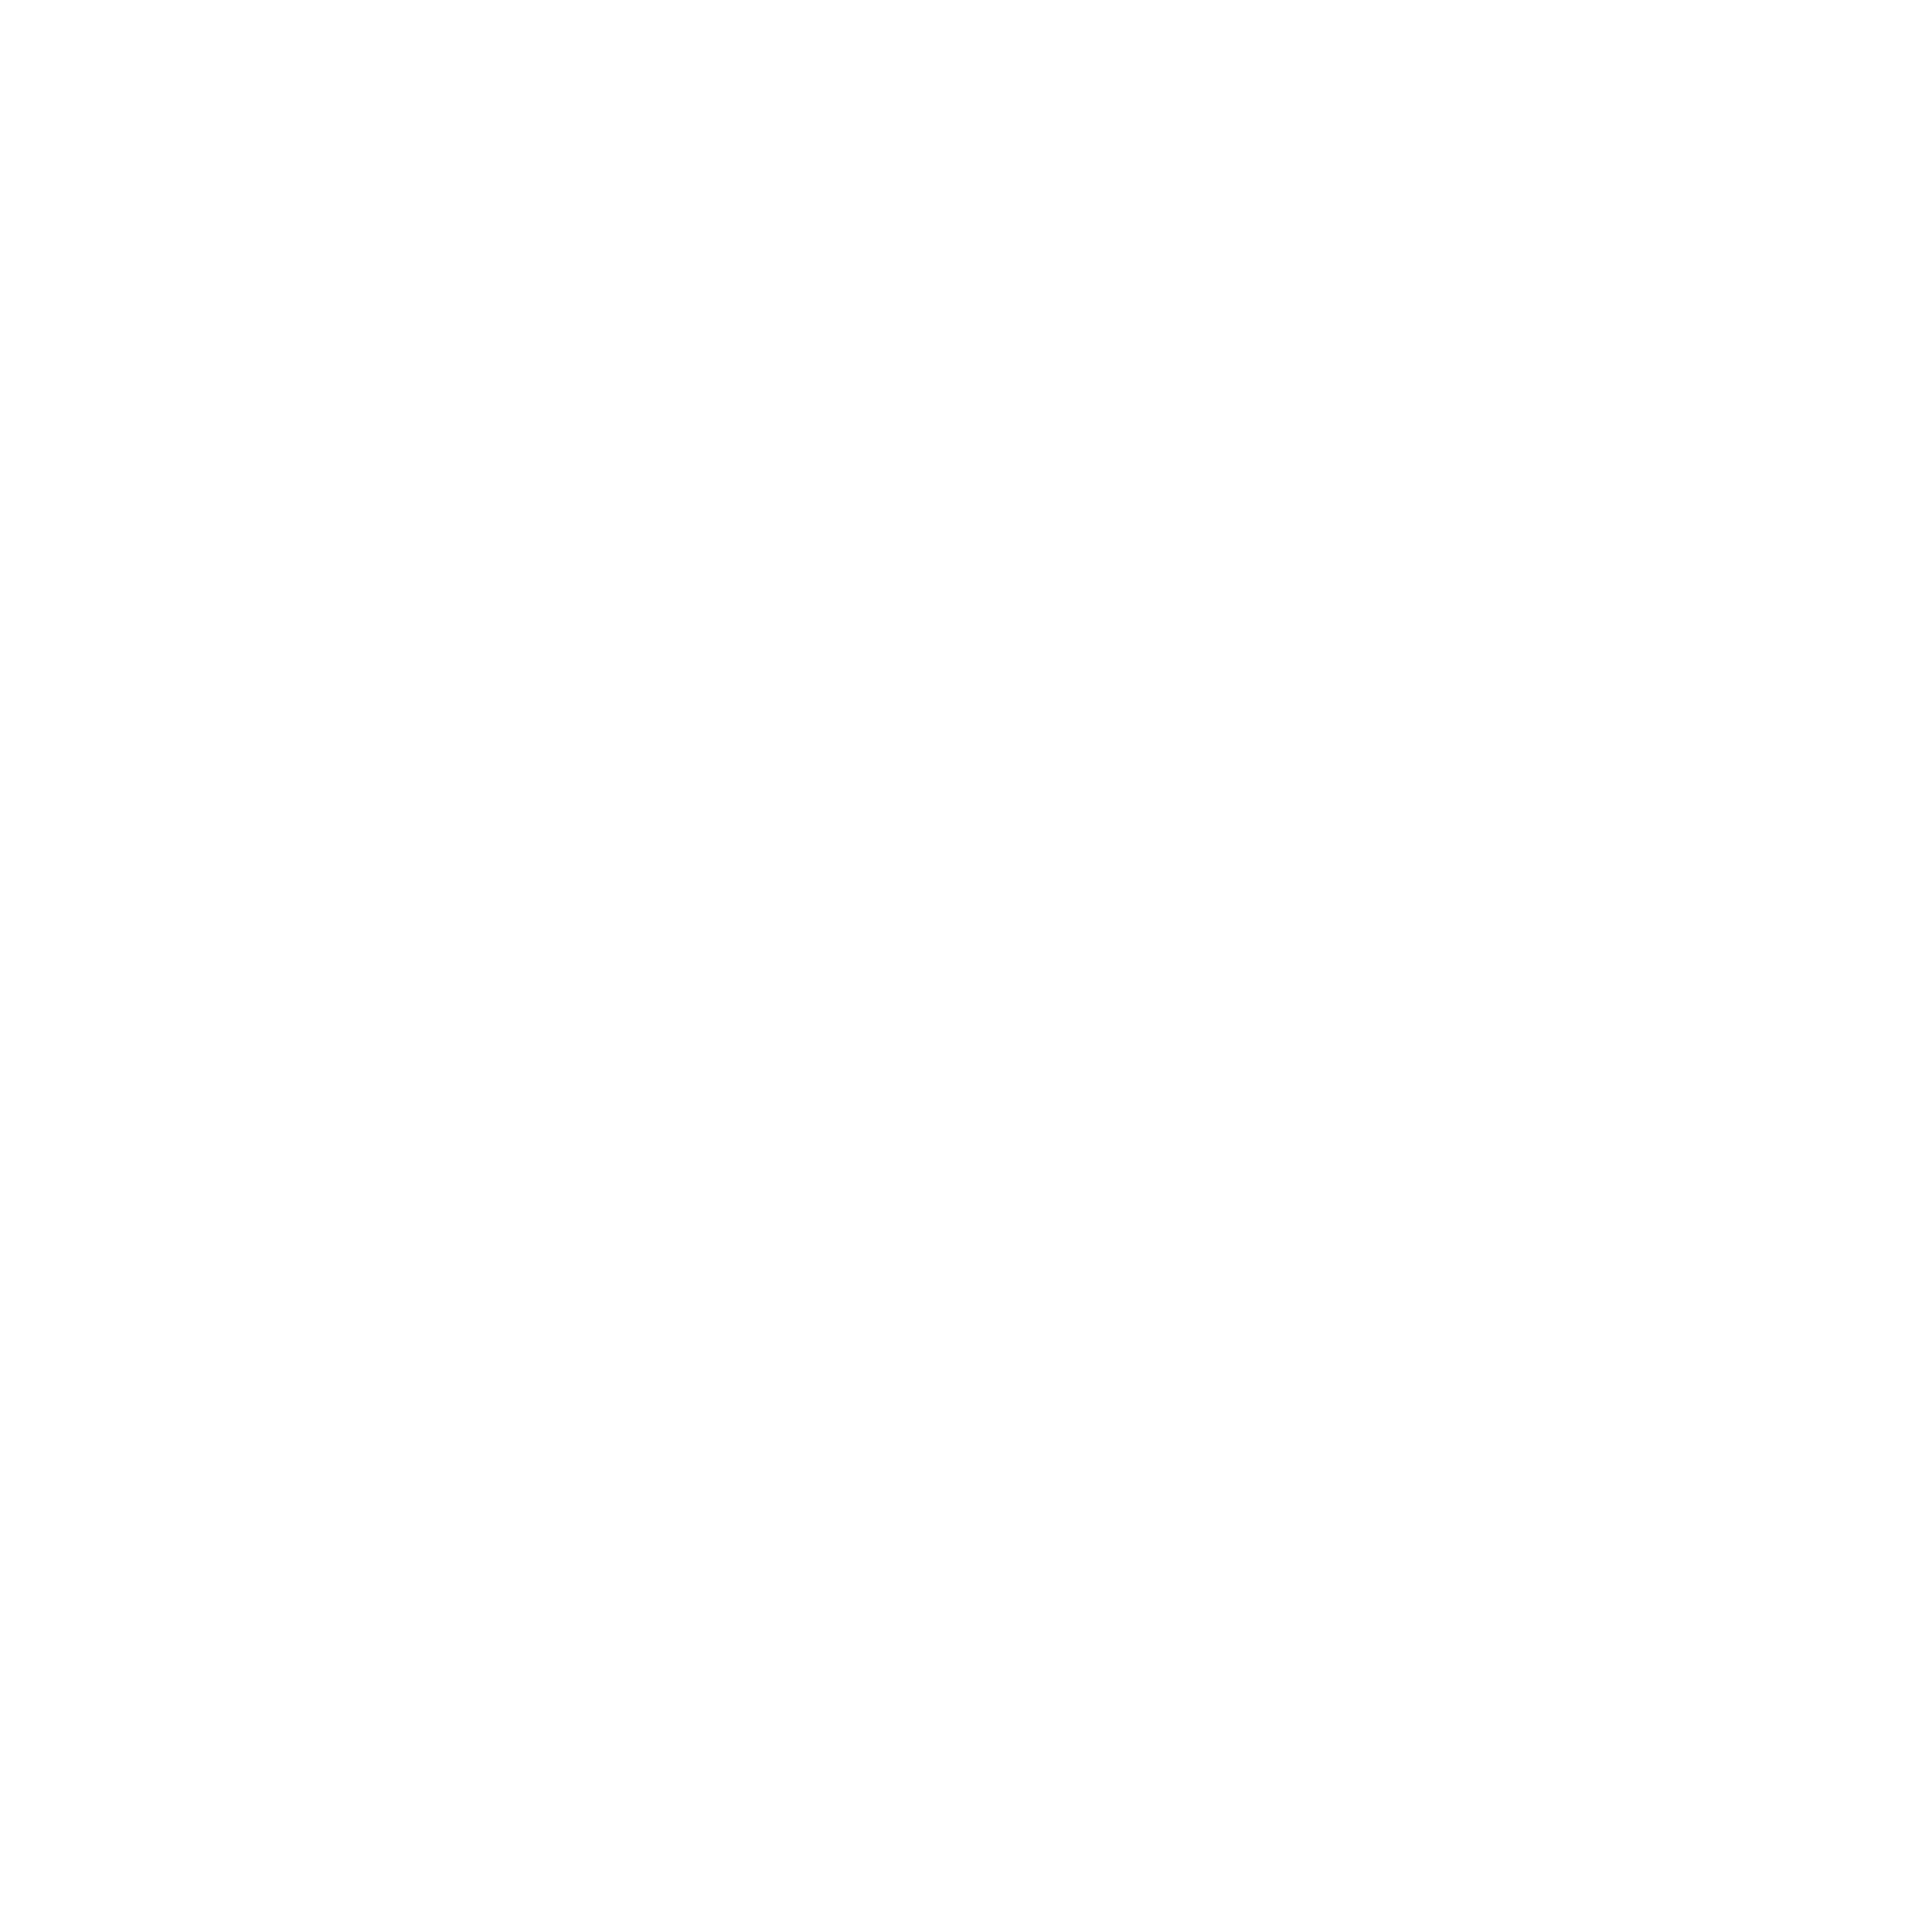 Chales and Keith